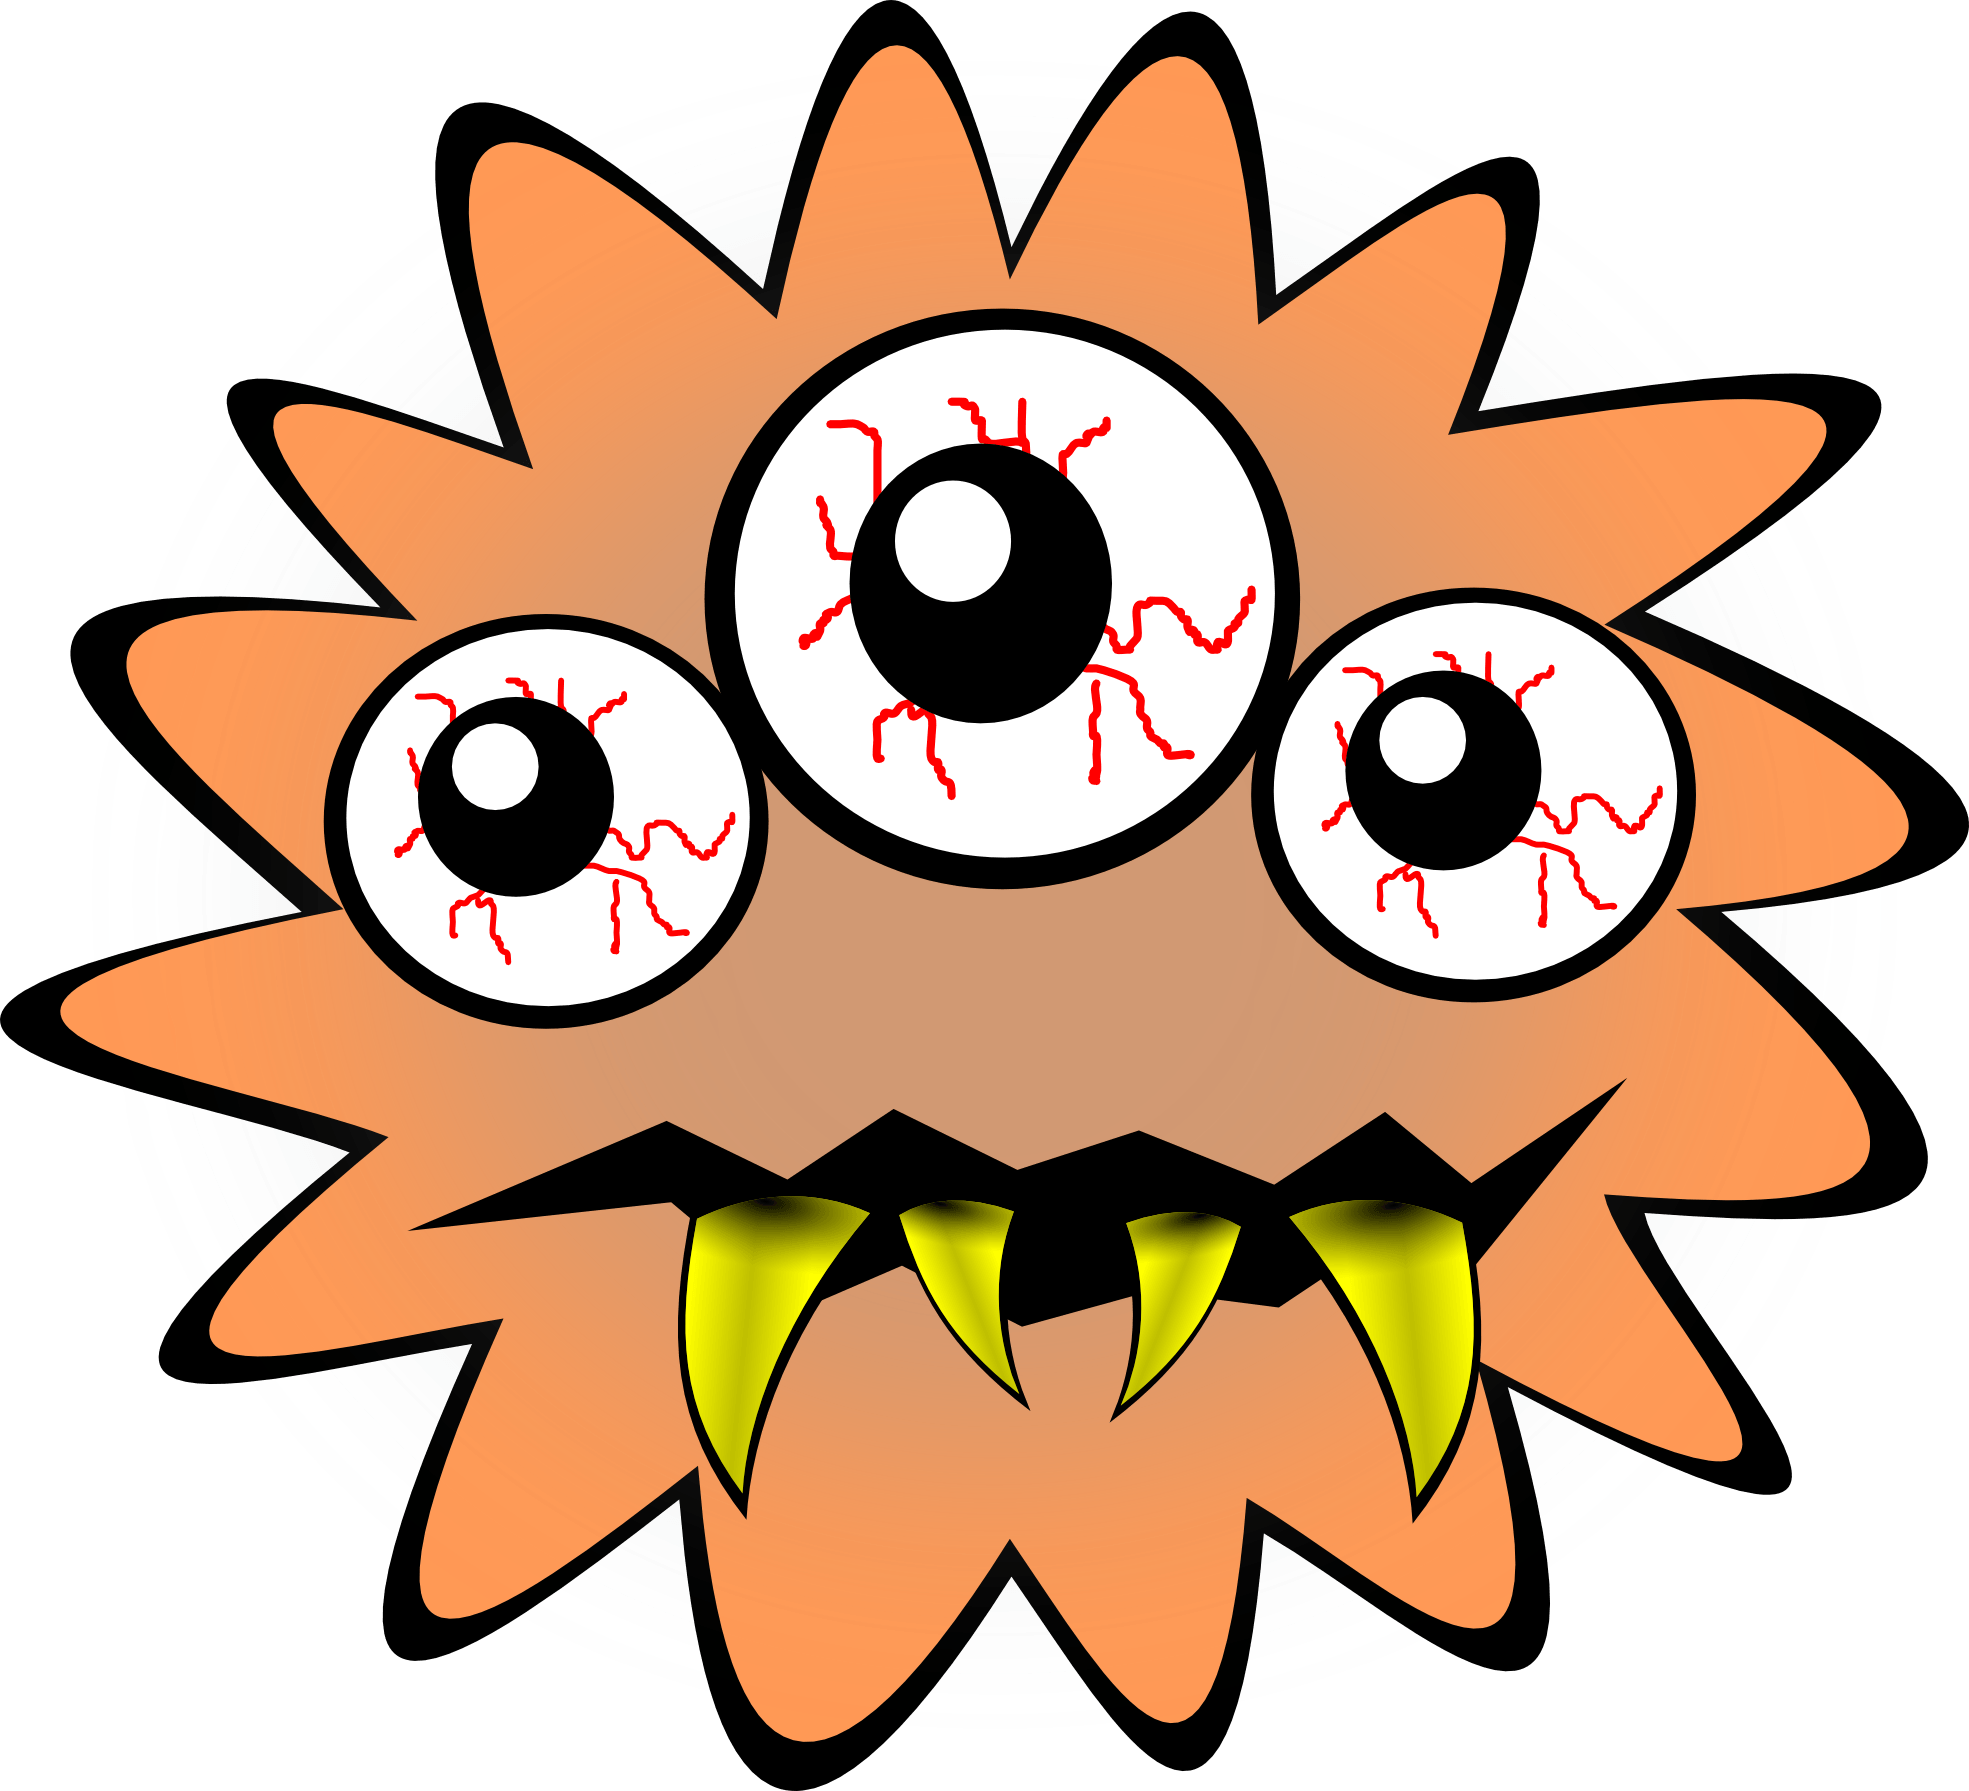 Germ clipart. Free cartoon cliparts download